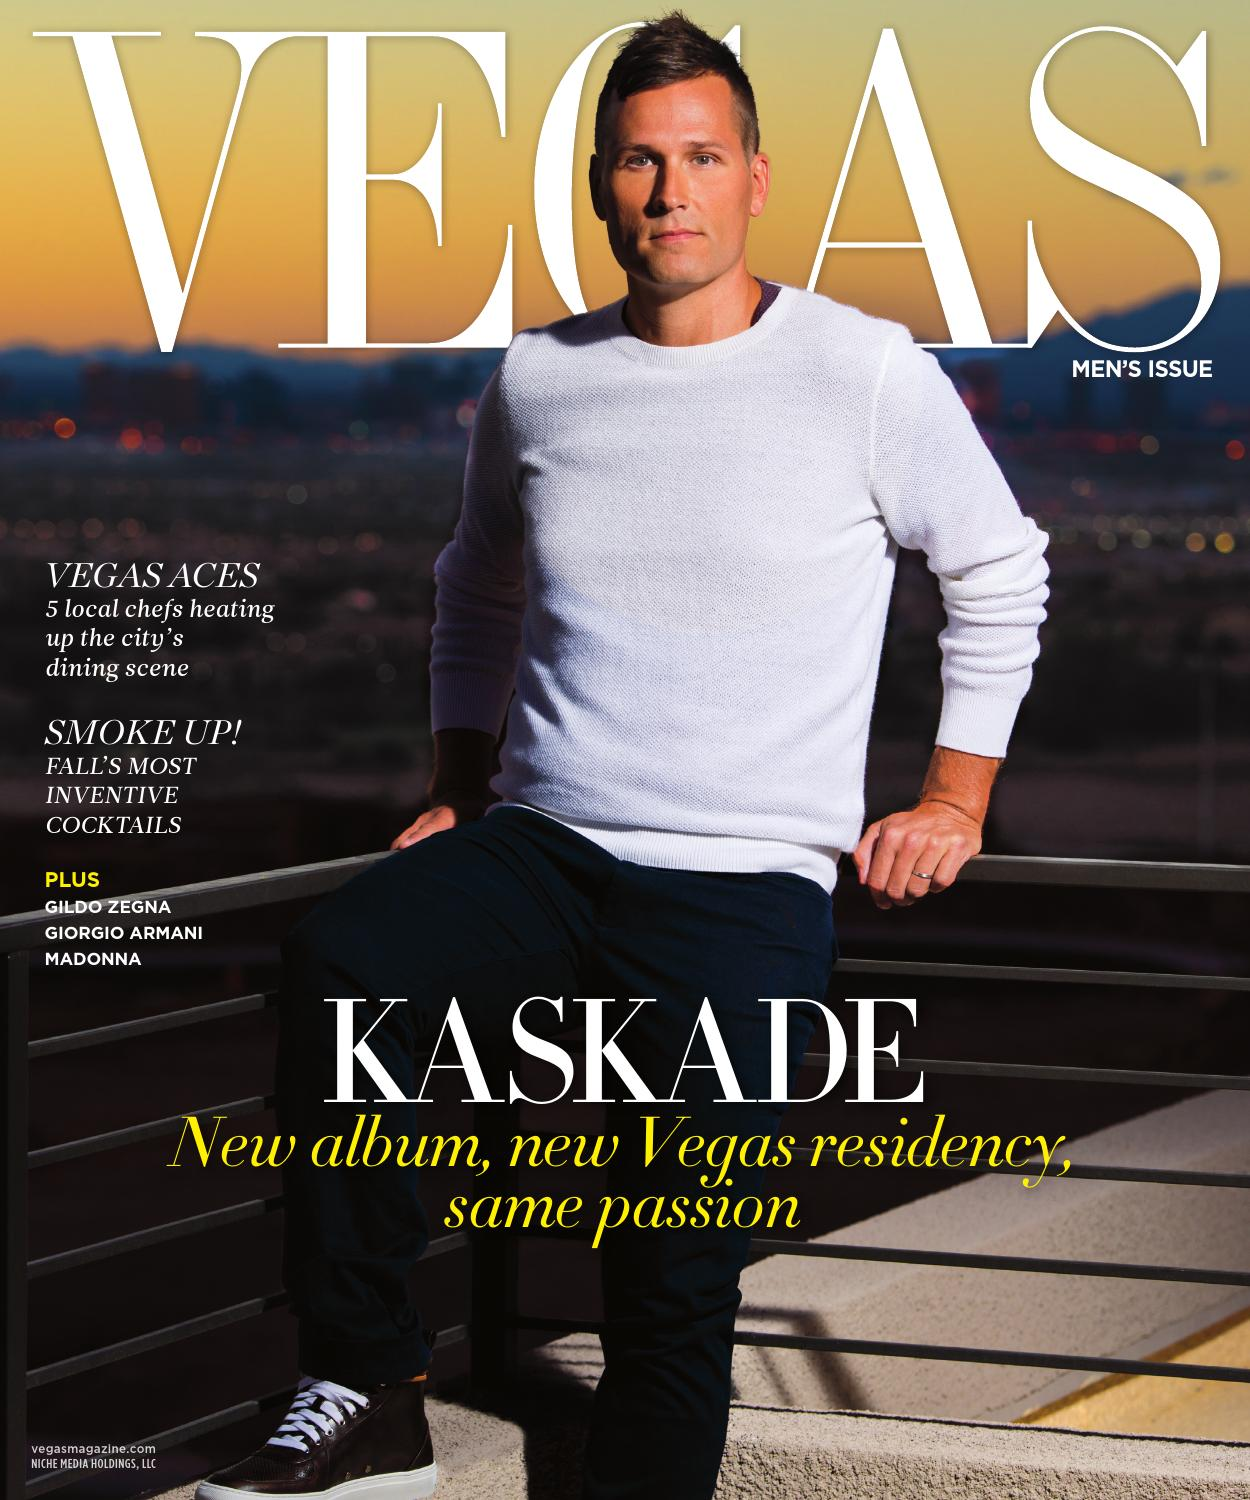 4a80e5776d39 Vegas - 2015 - Issue 6 - October - Kaskade by Niche Media Holdings ...